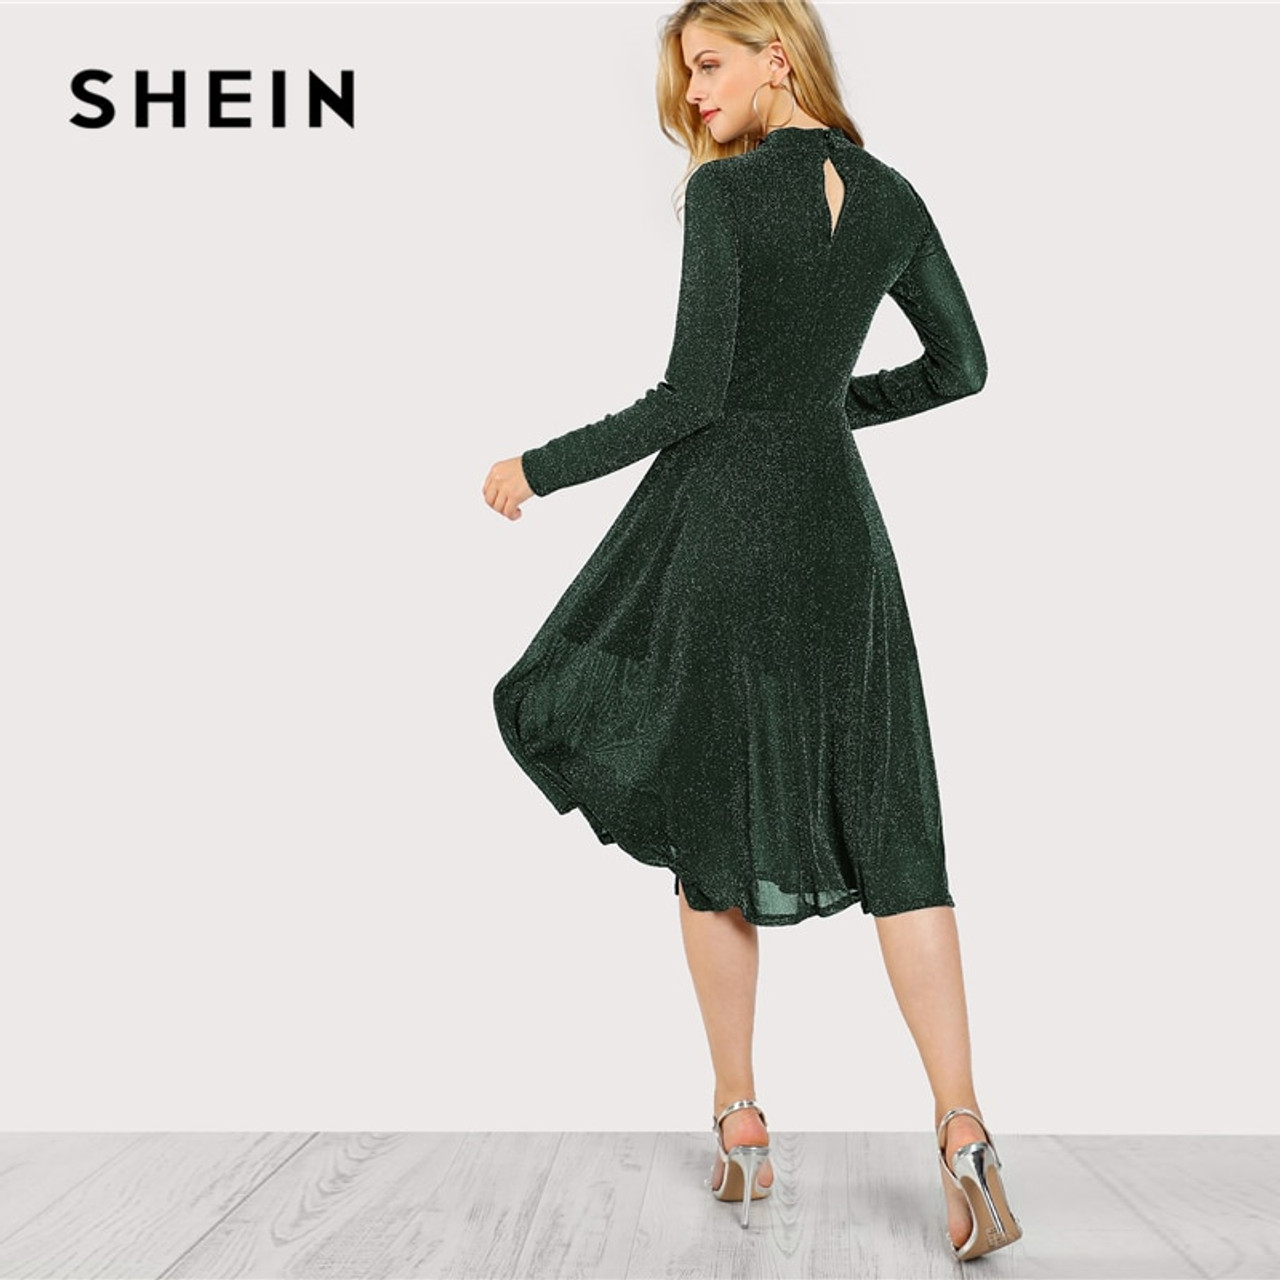 f83254a505 ... SHEIN Green Elegant Party Mock Neck Glitter Button Fit And Flare Solid  Natural Waist Dress 2018 ...